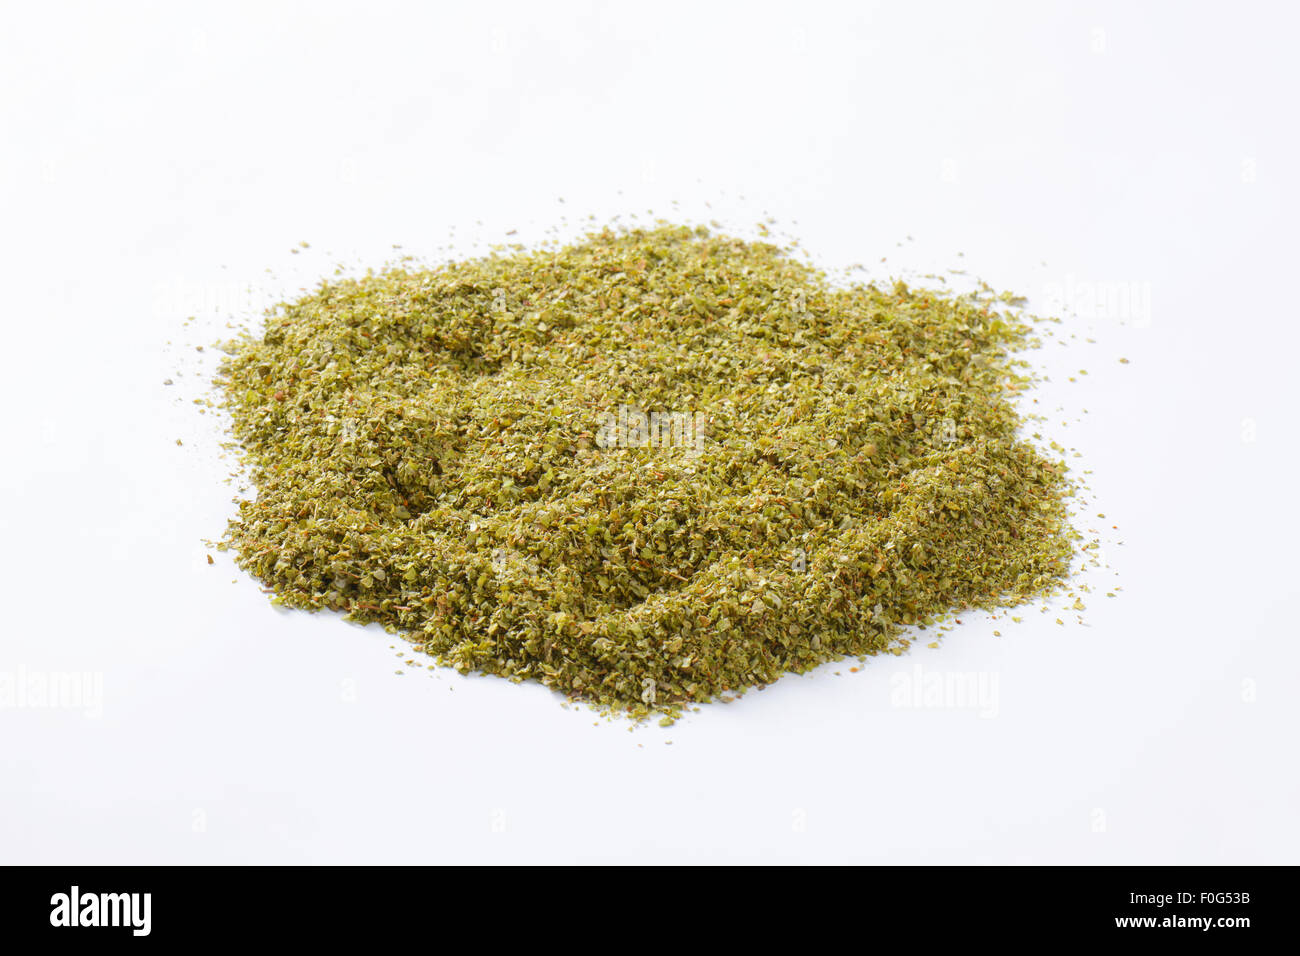 Heap of dried Marjoram leaves - Stock Image